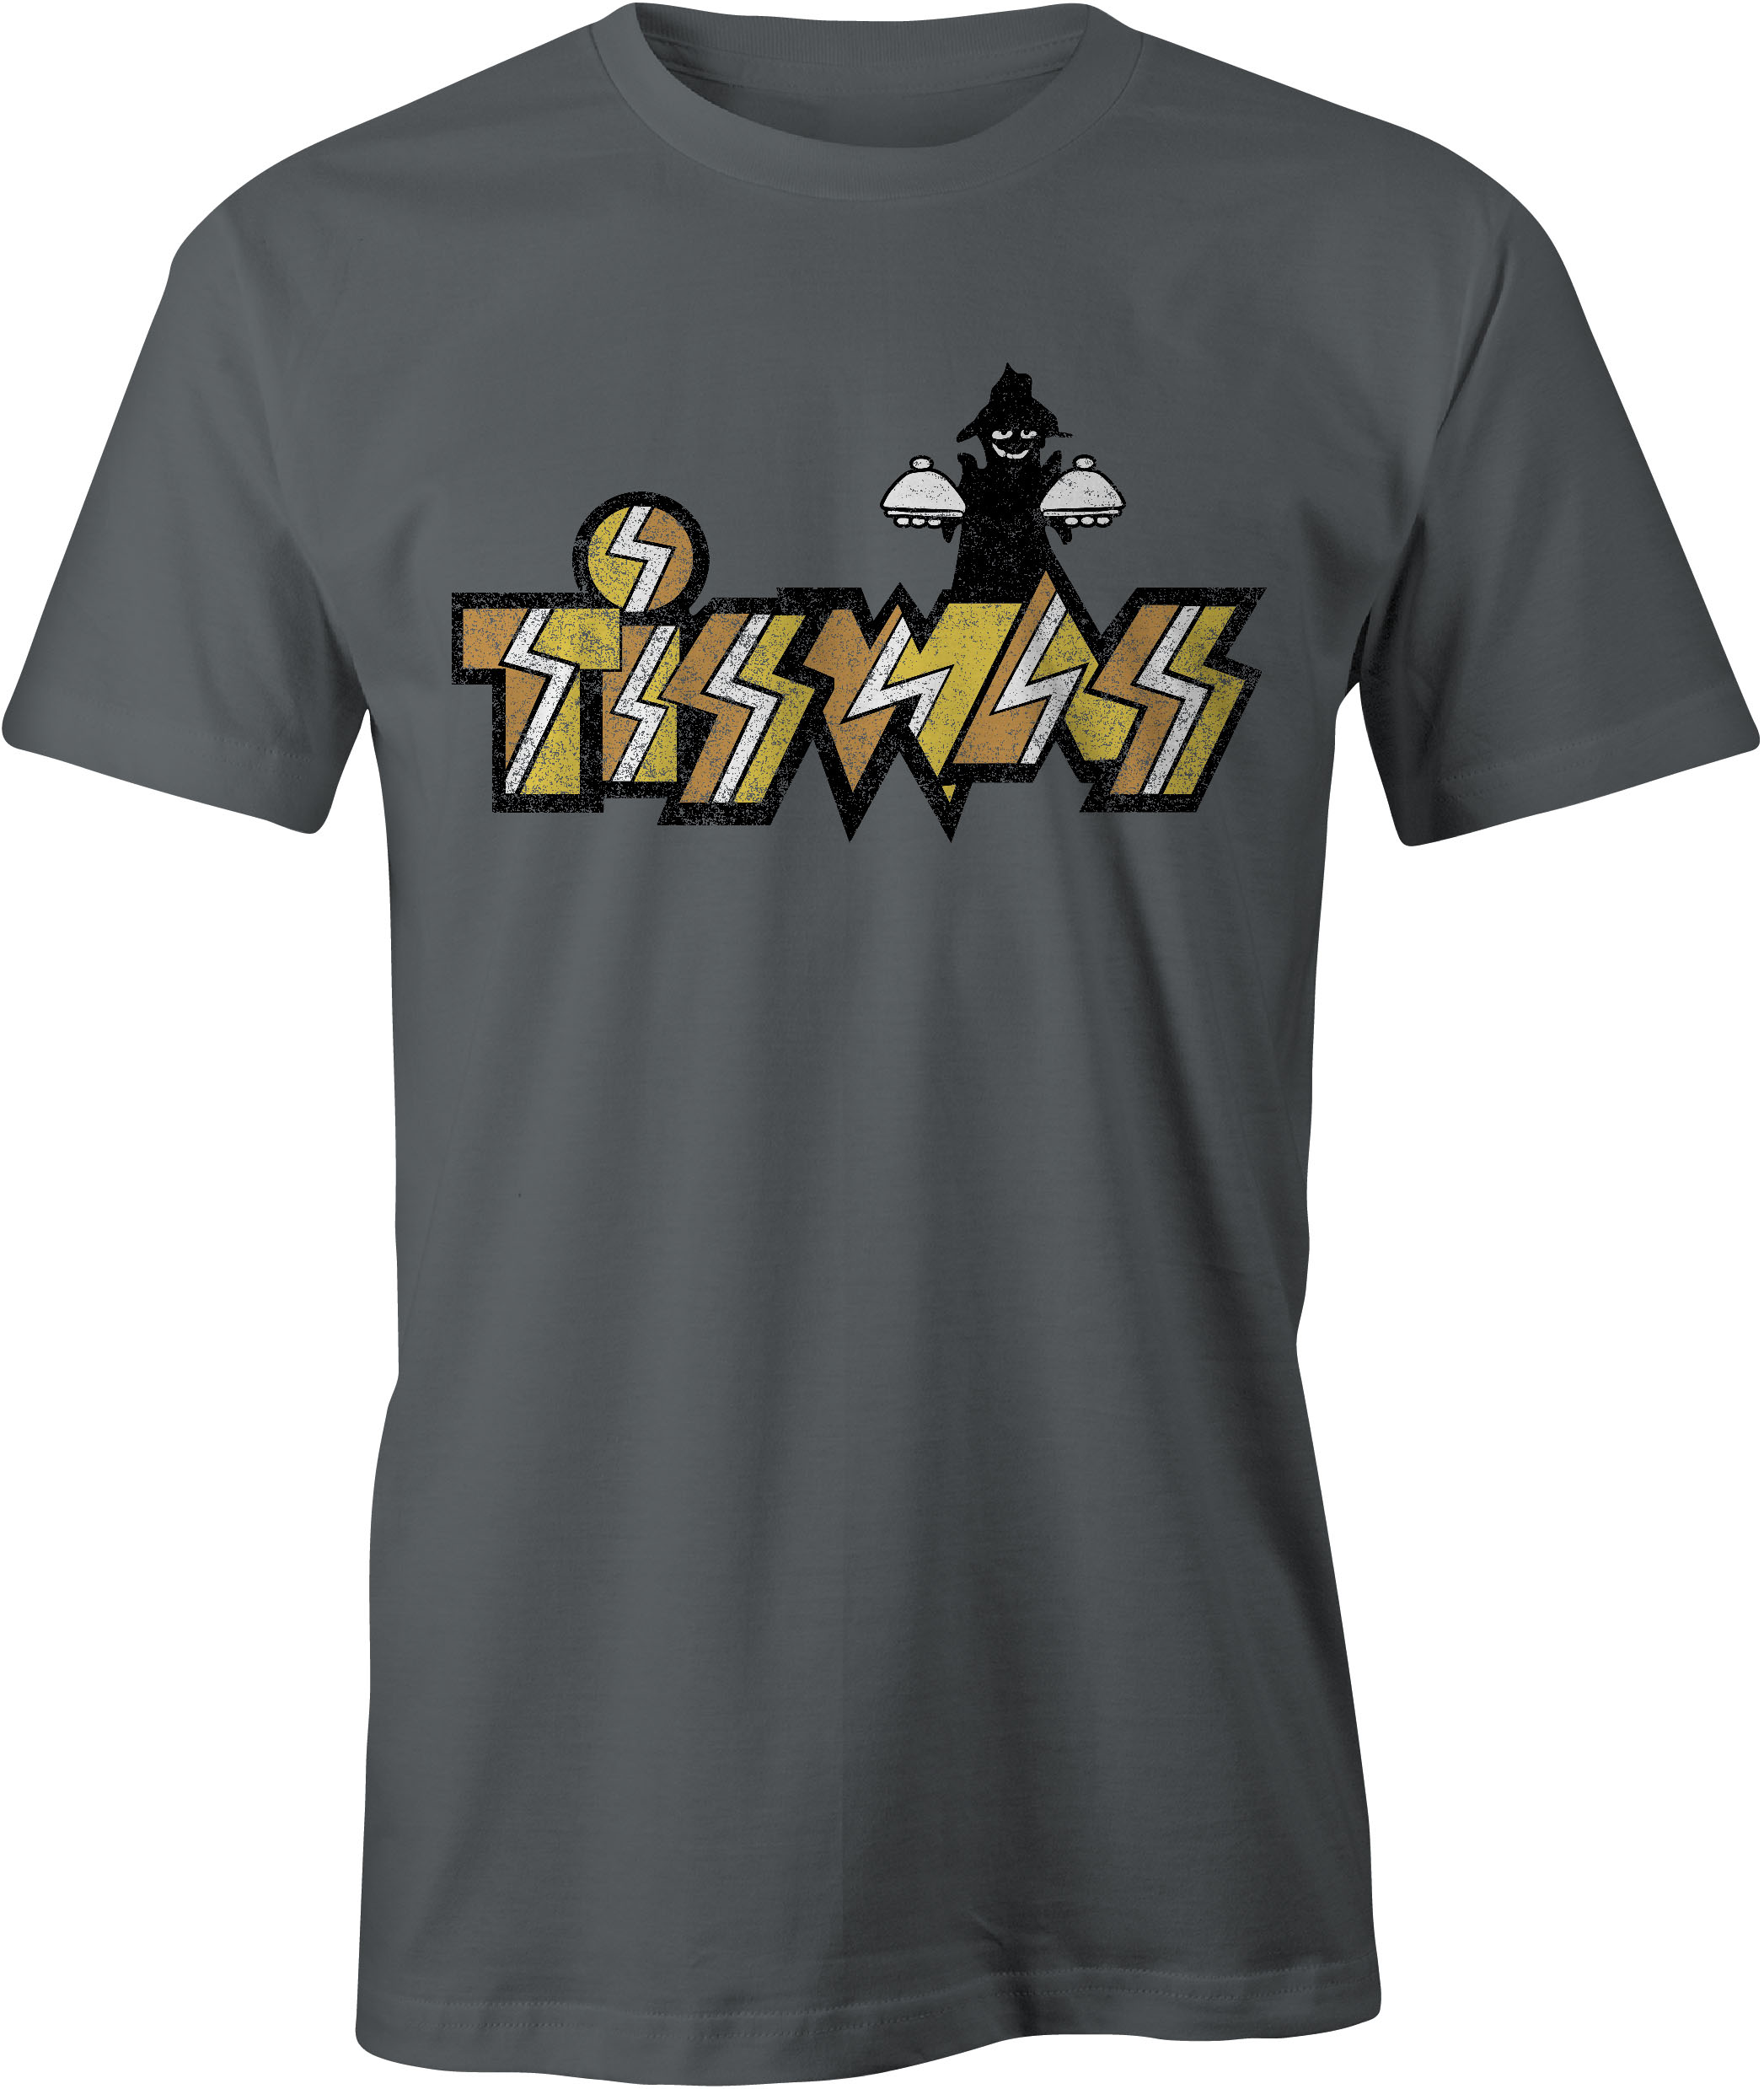 Tiswas T-Shirt Charcoal